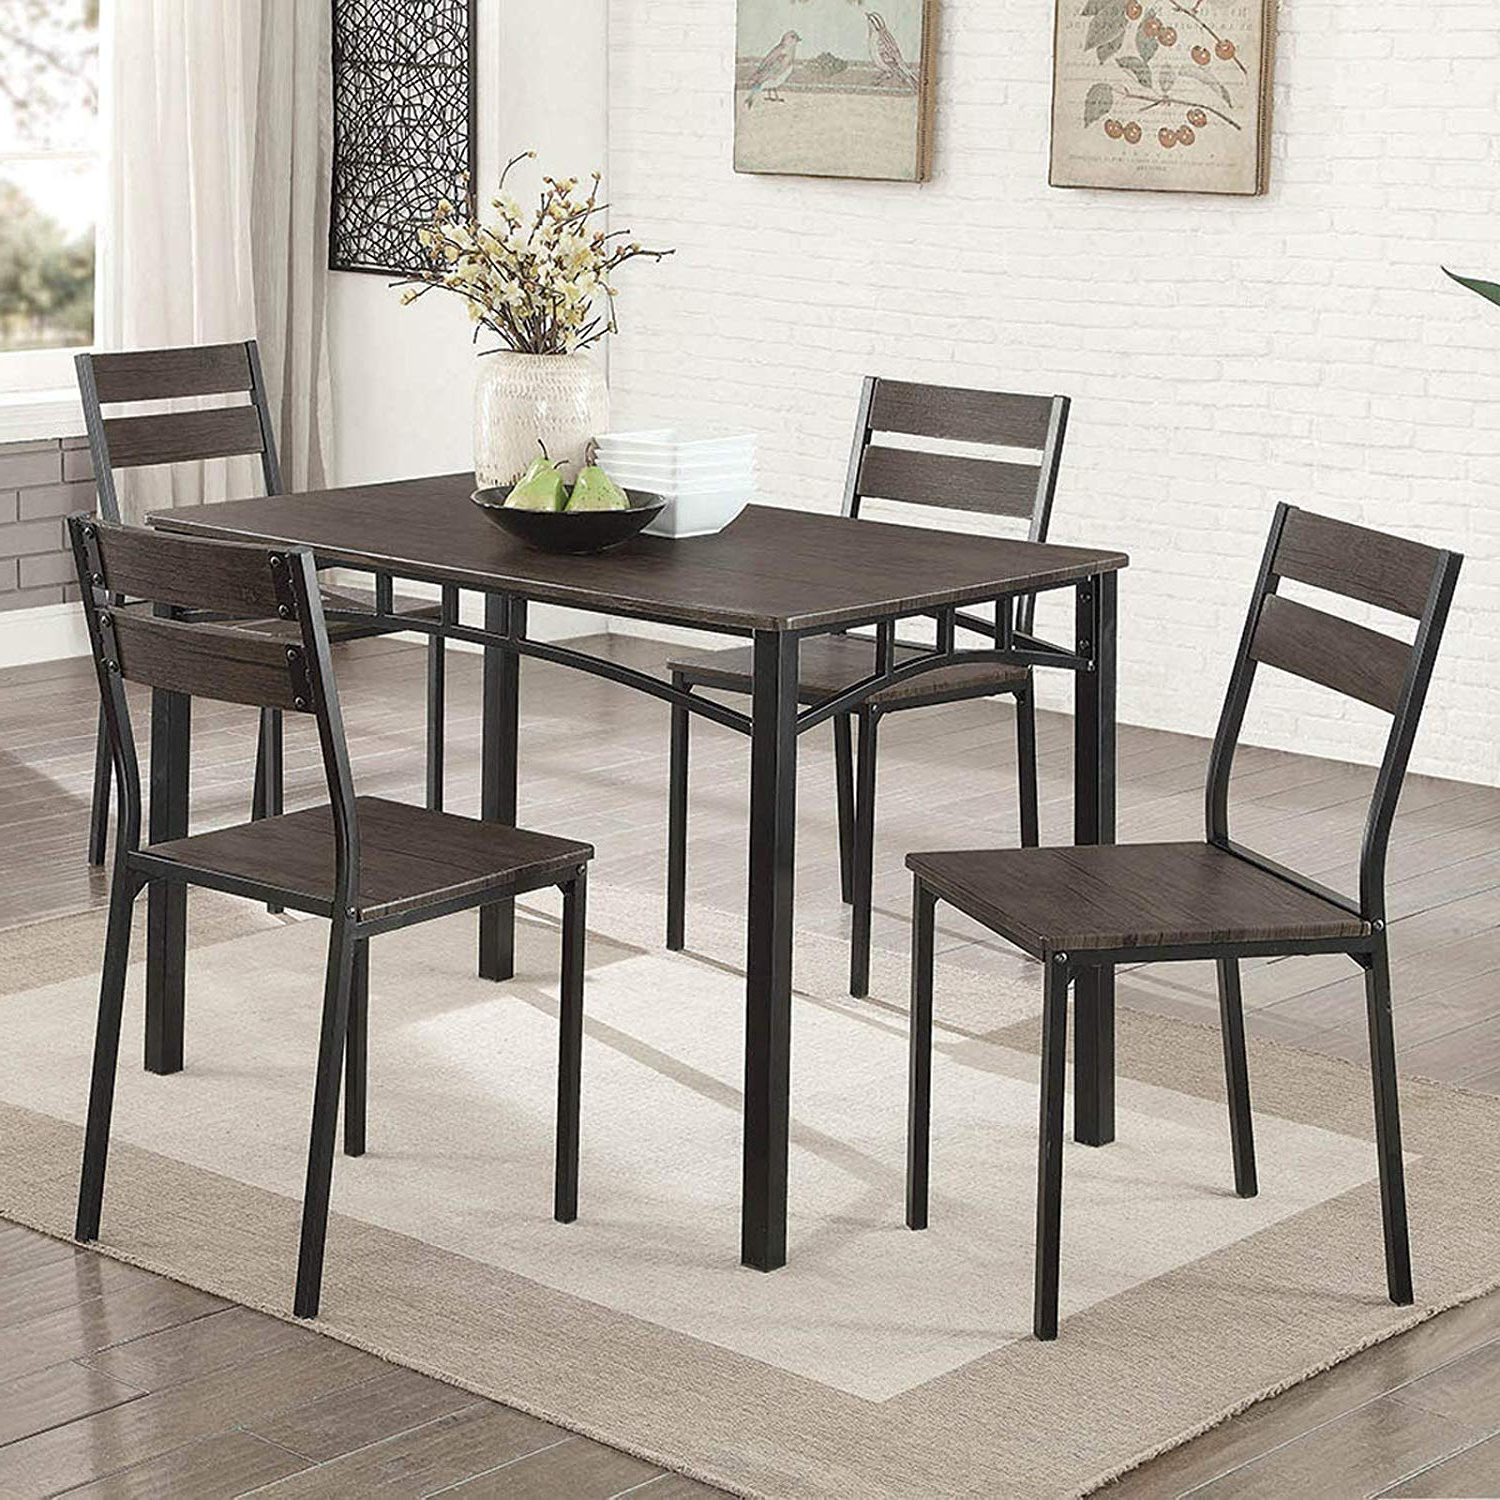 Recent Griffin Reclaimed Wood Dining Tables intended for Amazon - Simple Interior 5 Piece Rustic Dining Set